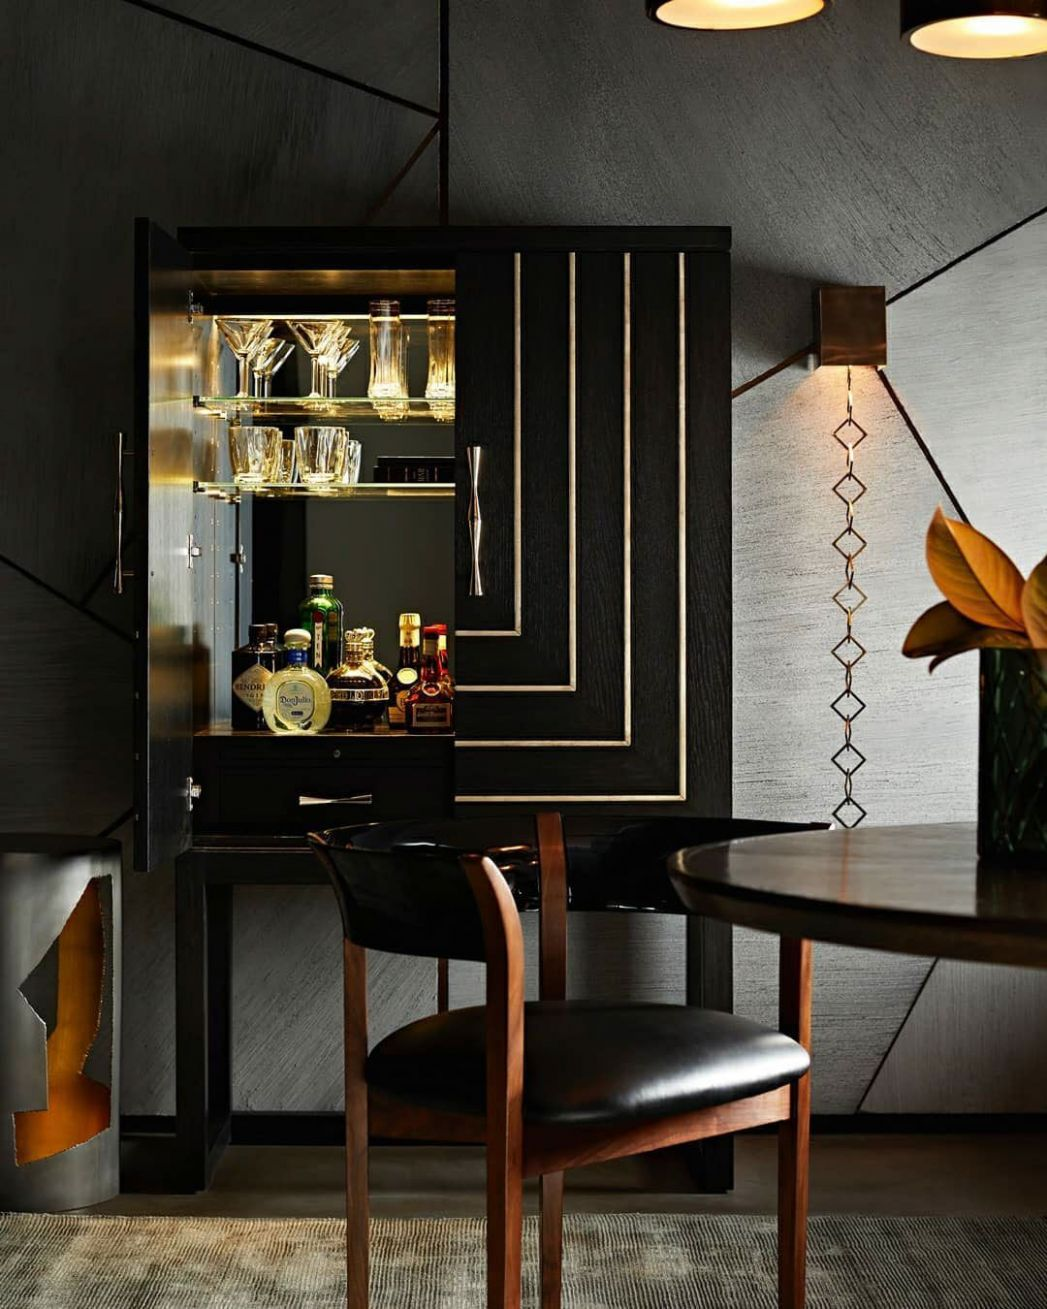 luxury interior setting featuring lavish bar cabinet; luxury ...